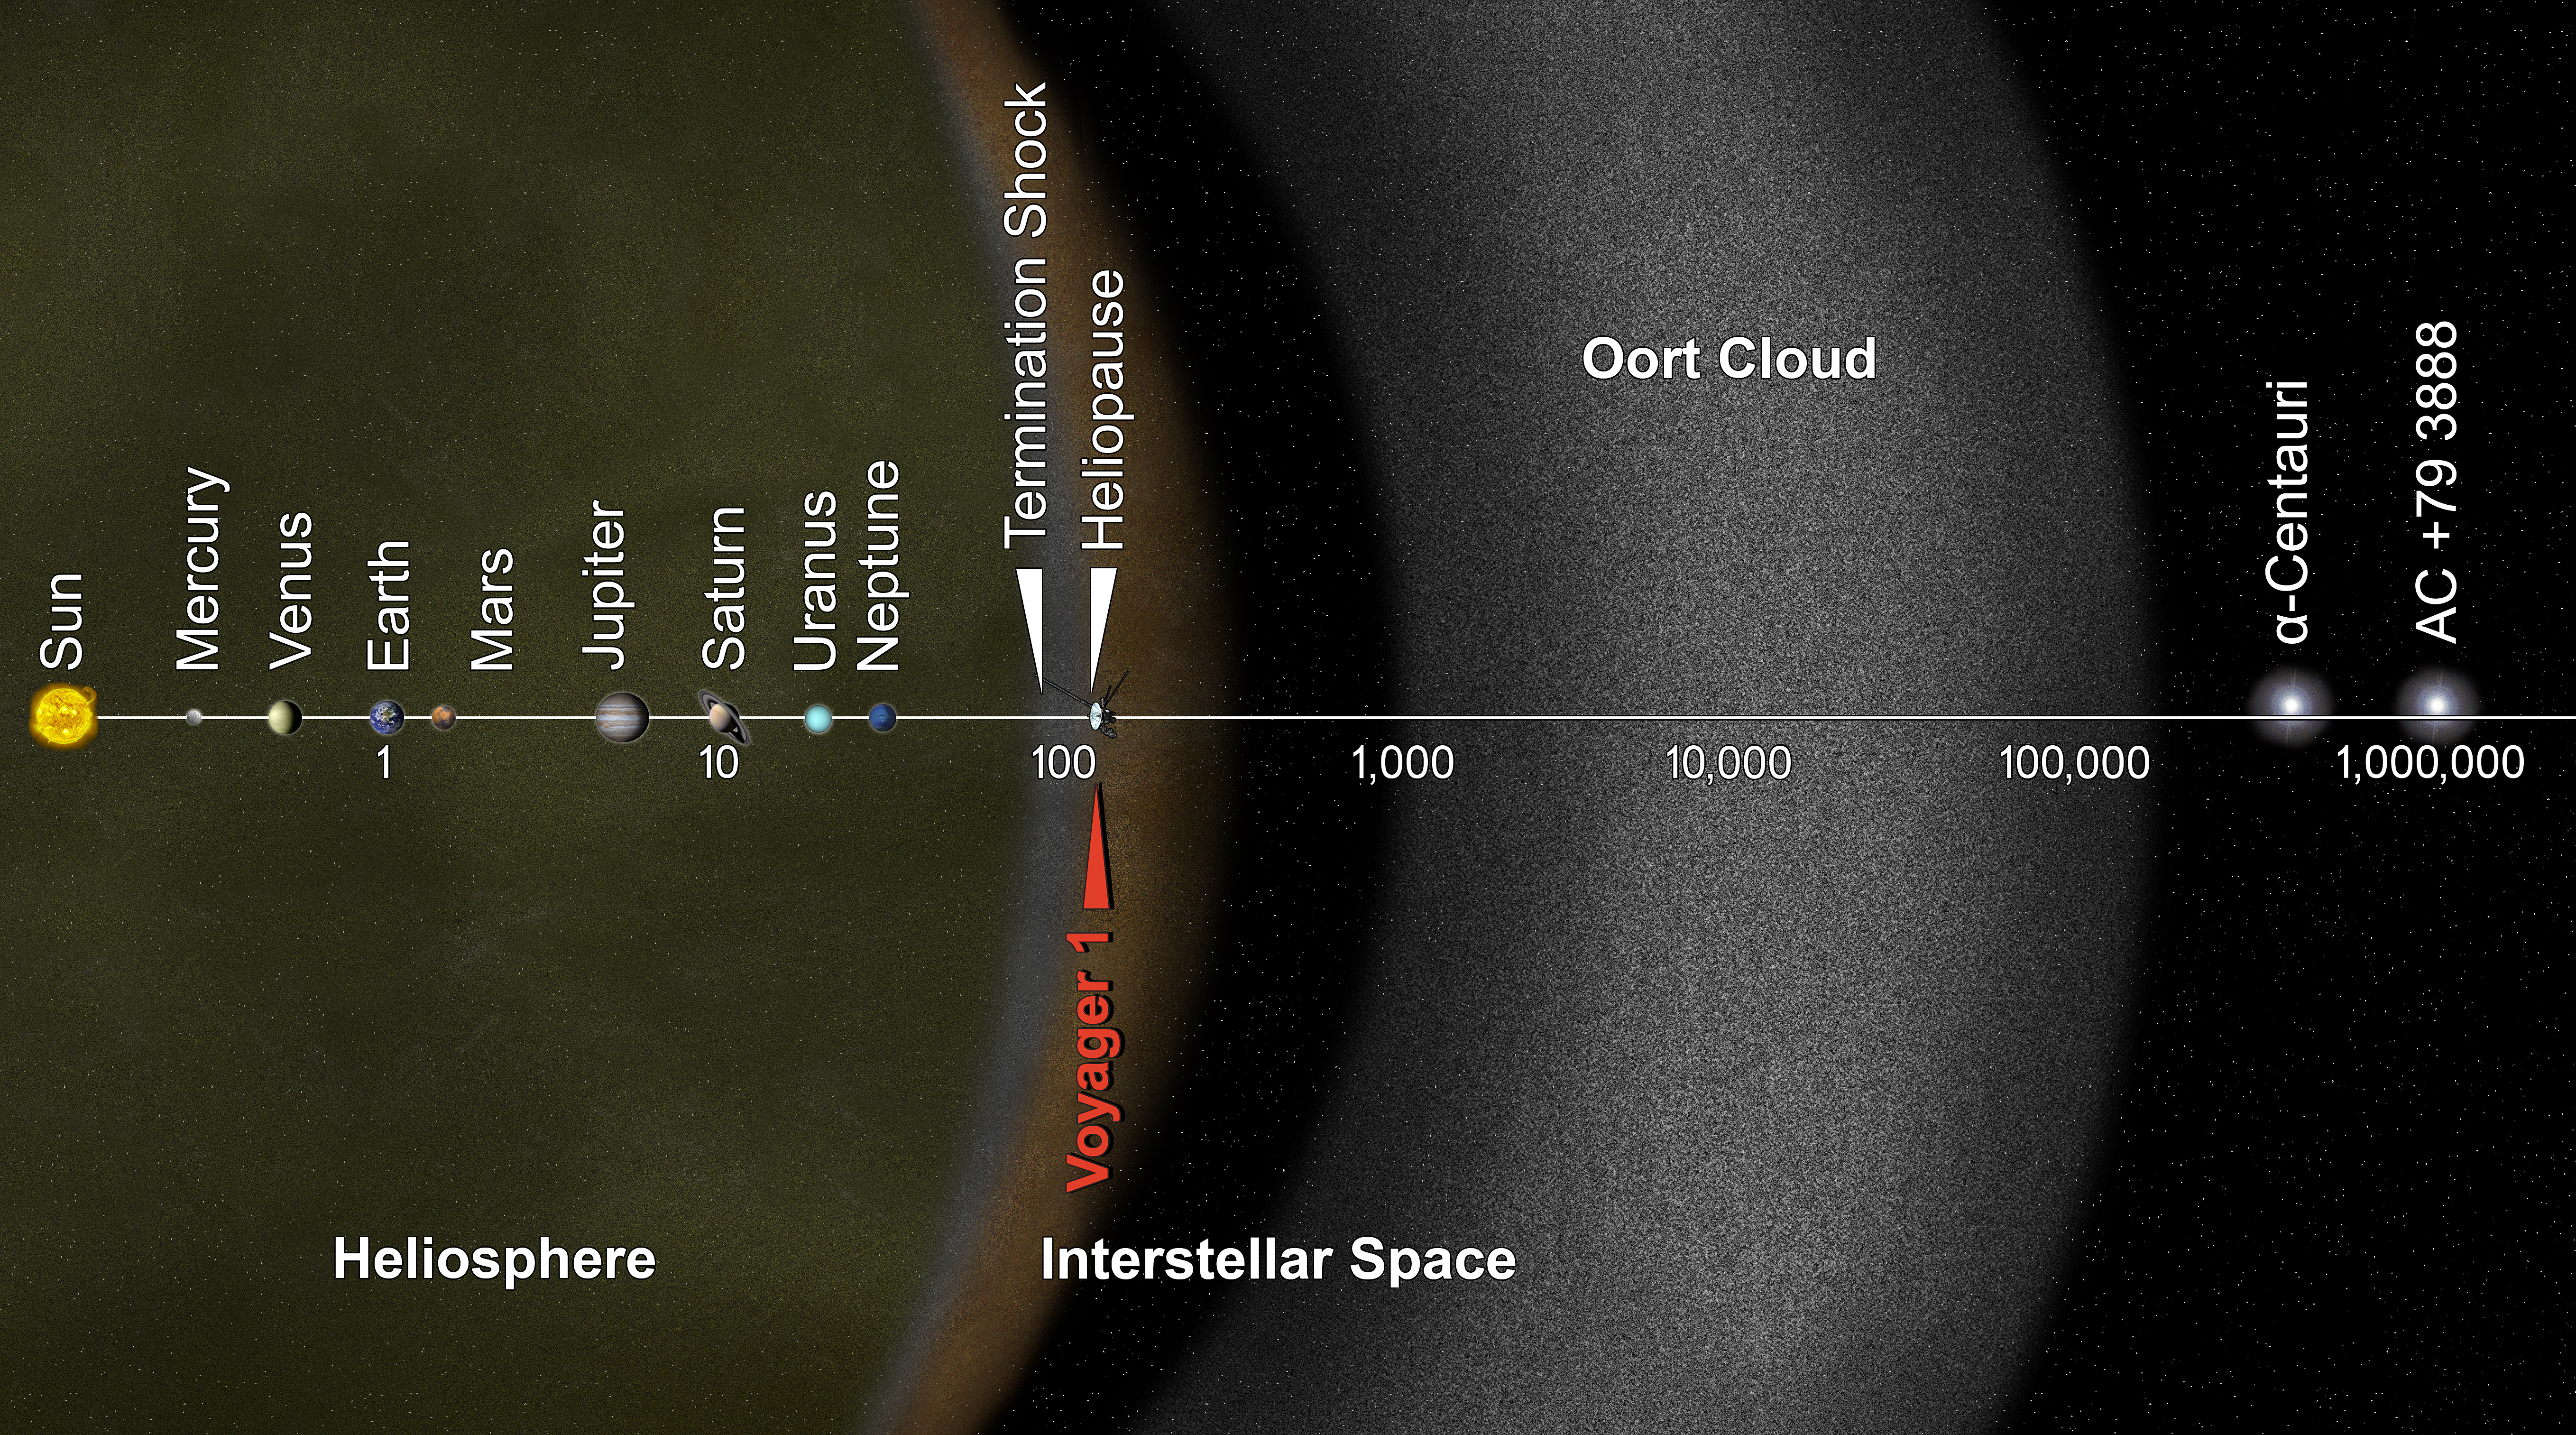 Voyager goes intersellar: This artist's concept puts solar system distances in perspective. The scale bar is in astronomical units, with each set distance beyond 1 AU representing 10 times the previous distance. One AU is the distance from the sun to the Earth, which is about 93 million miles or 150 million kilometers. NASA's Voyager 1, humankind's most distant spacecraft, is around 125 AU. Scientists believe it entered interstellar space - the space between stars - on Aug. 25, 2012. Image: NASA/JPL-Caltech